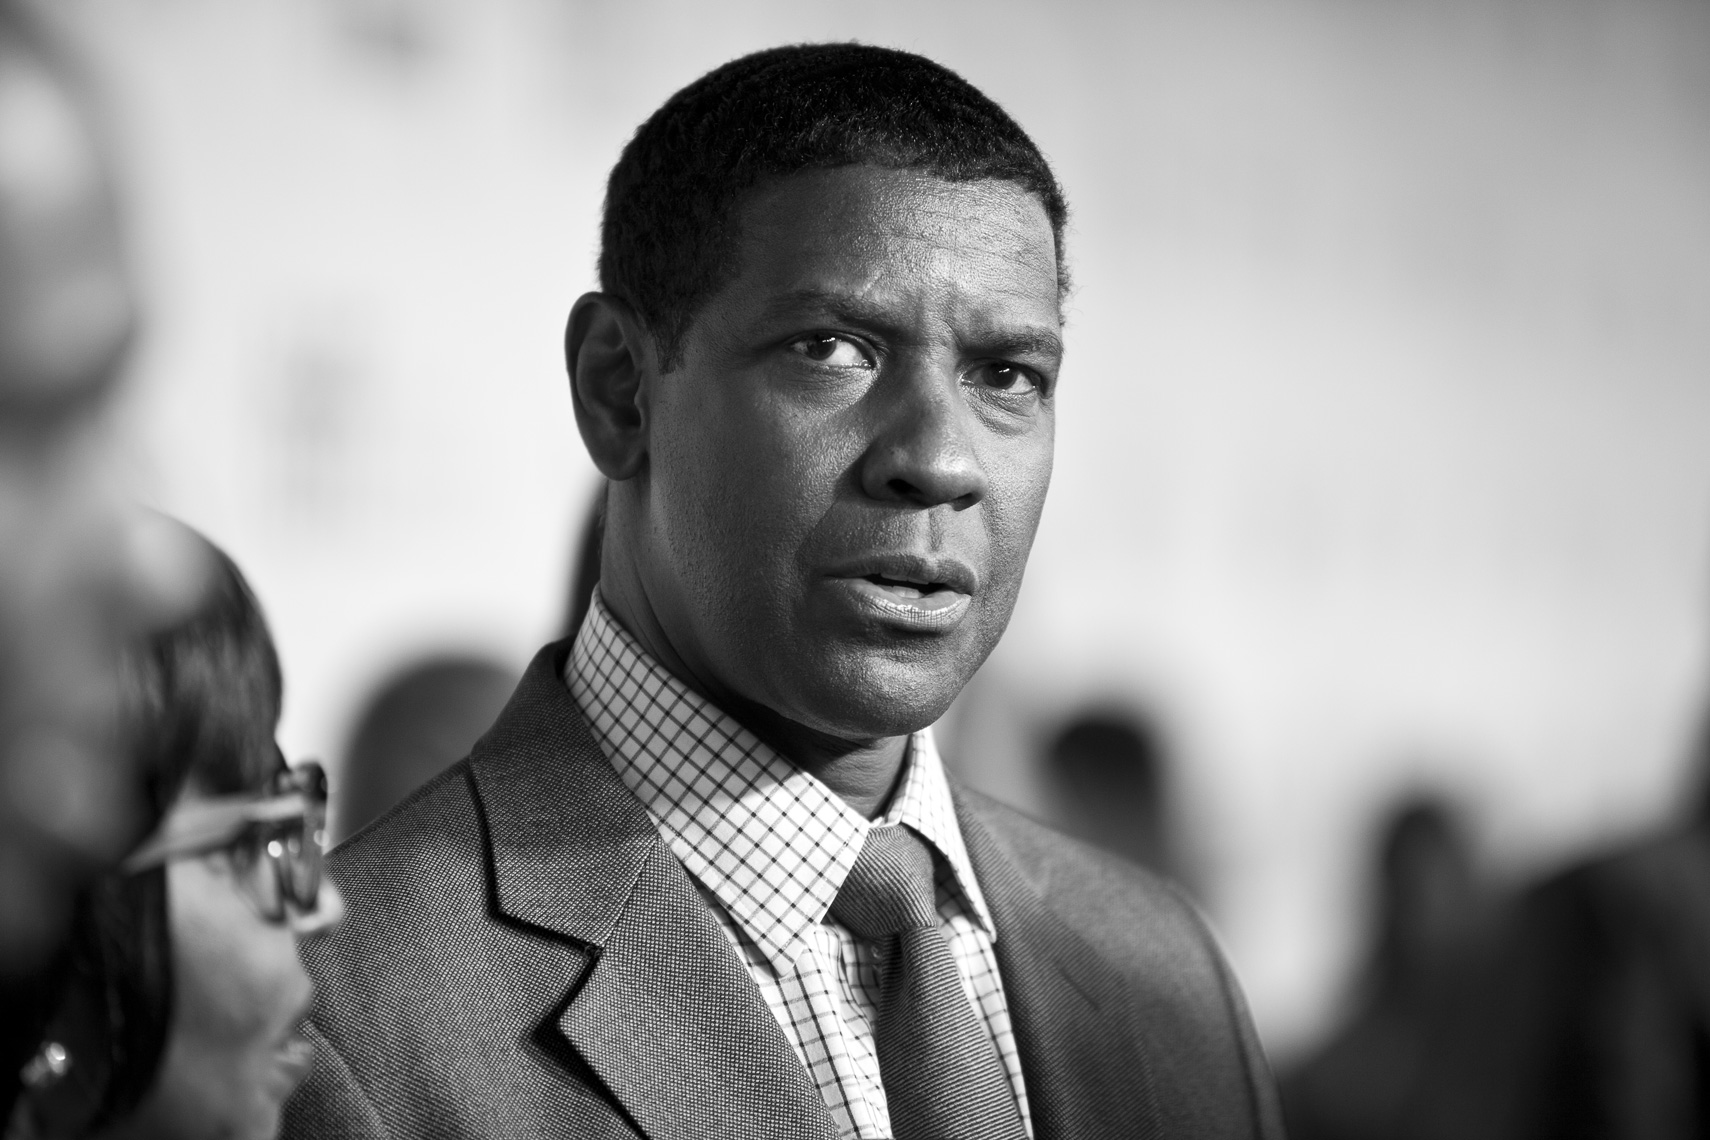 B.J.NOWAK - Denzel Washington